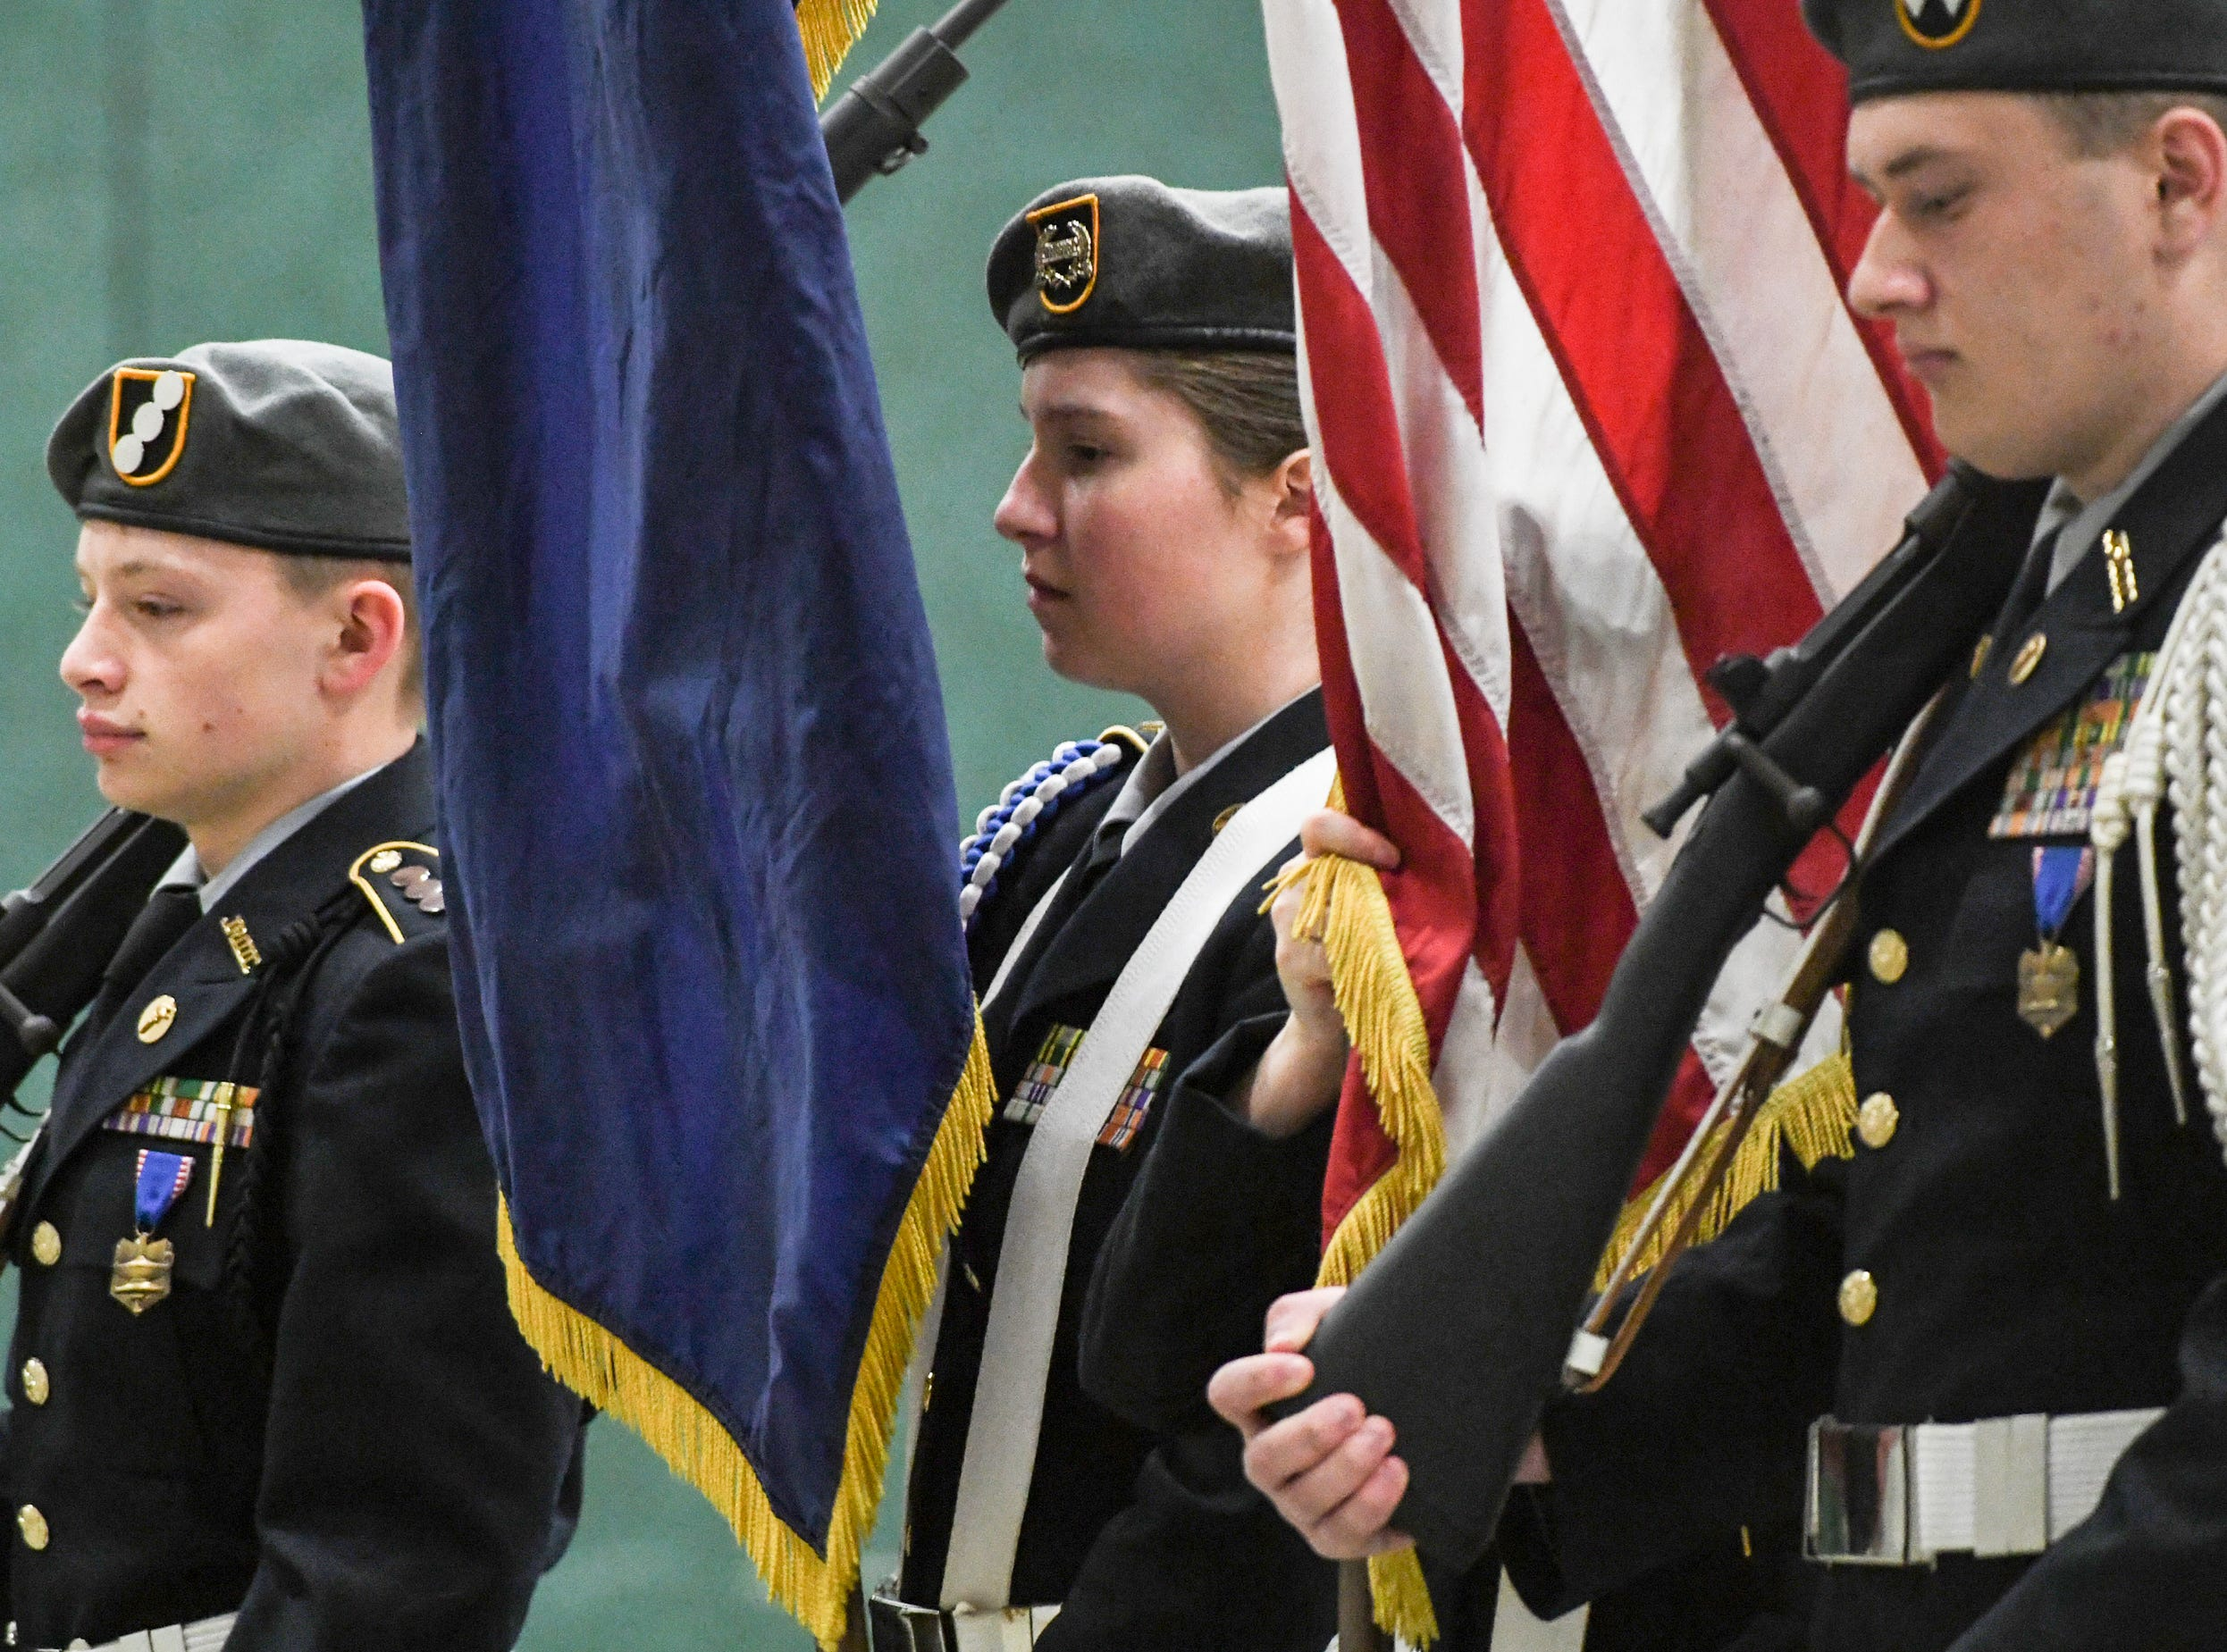 Westside High School JROTC Color Guard during the Anderson County Martin Luther King, Jr. Celebration in Anderson January 21, 2019. This yearÕs keynote speaker is Cyrus Birch, Charleston native and community activist, who works as a model and stunt performer, seen as a Jabari warrior in the megahit ÒBlack Panther.Ó